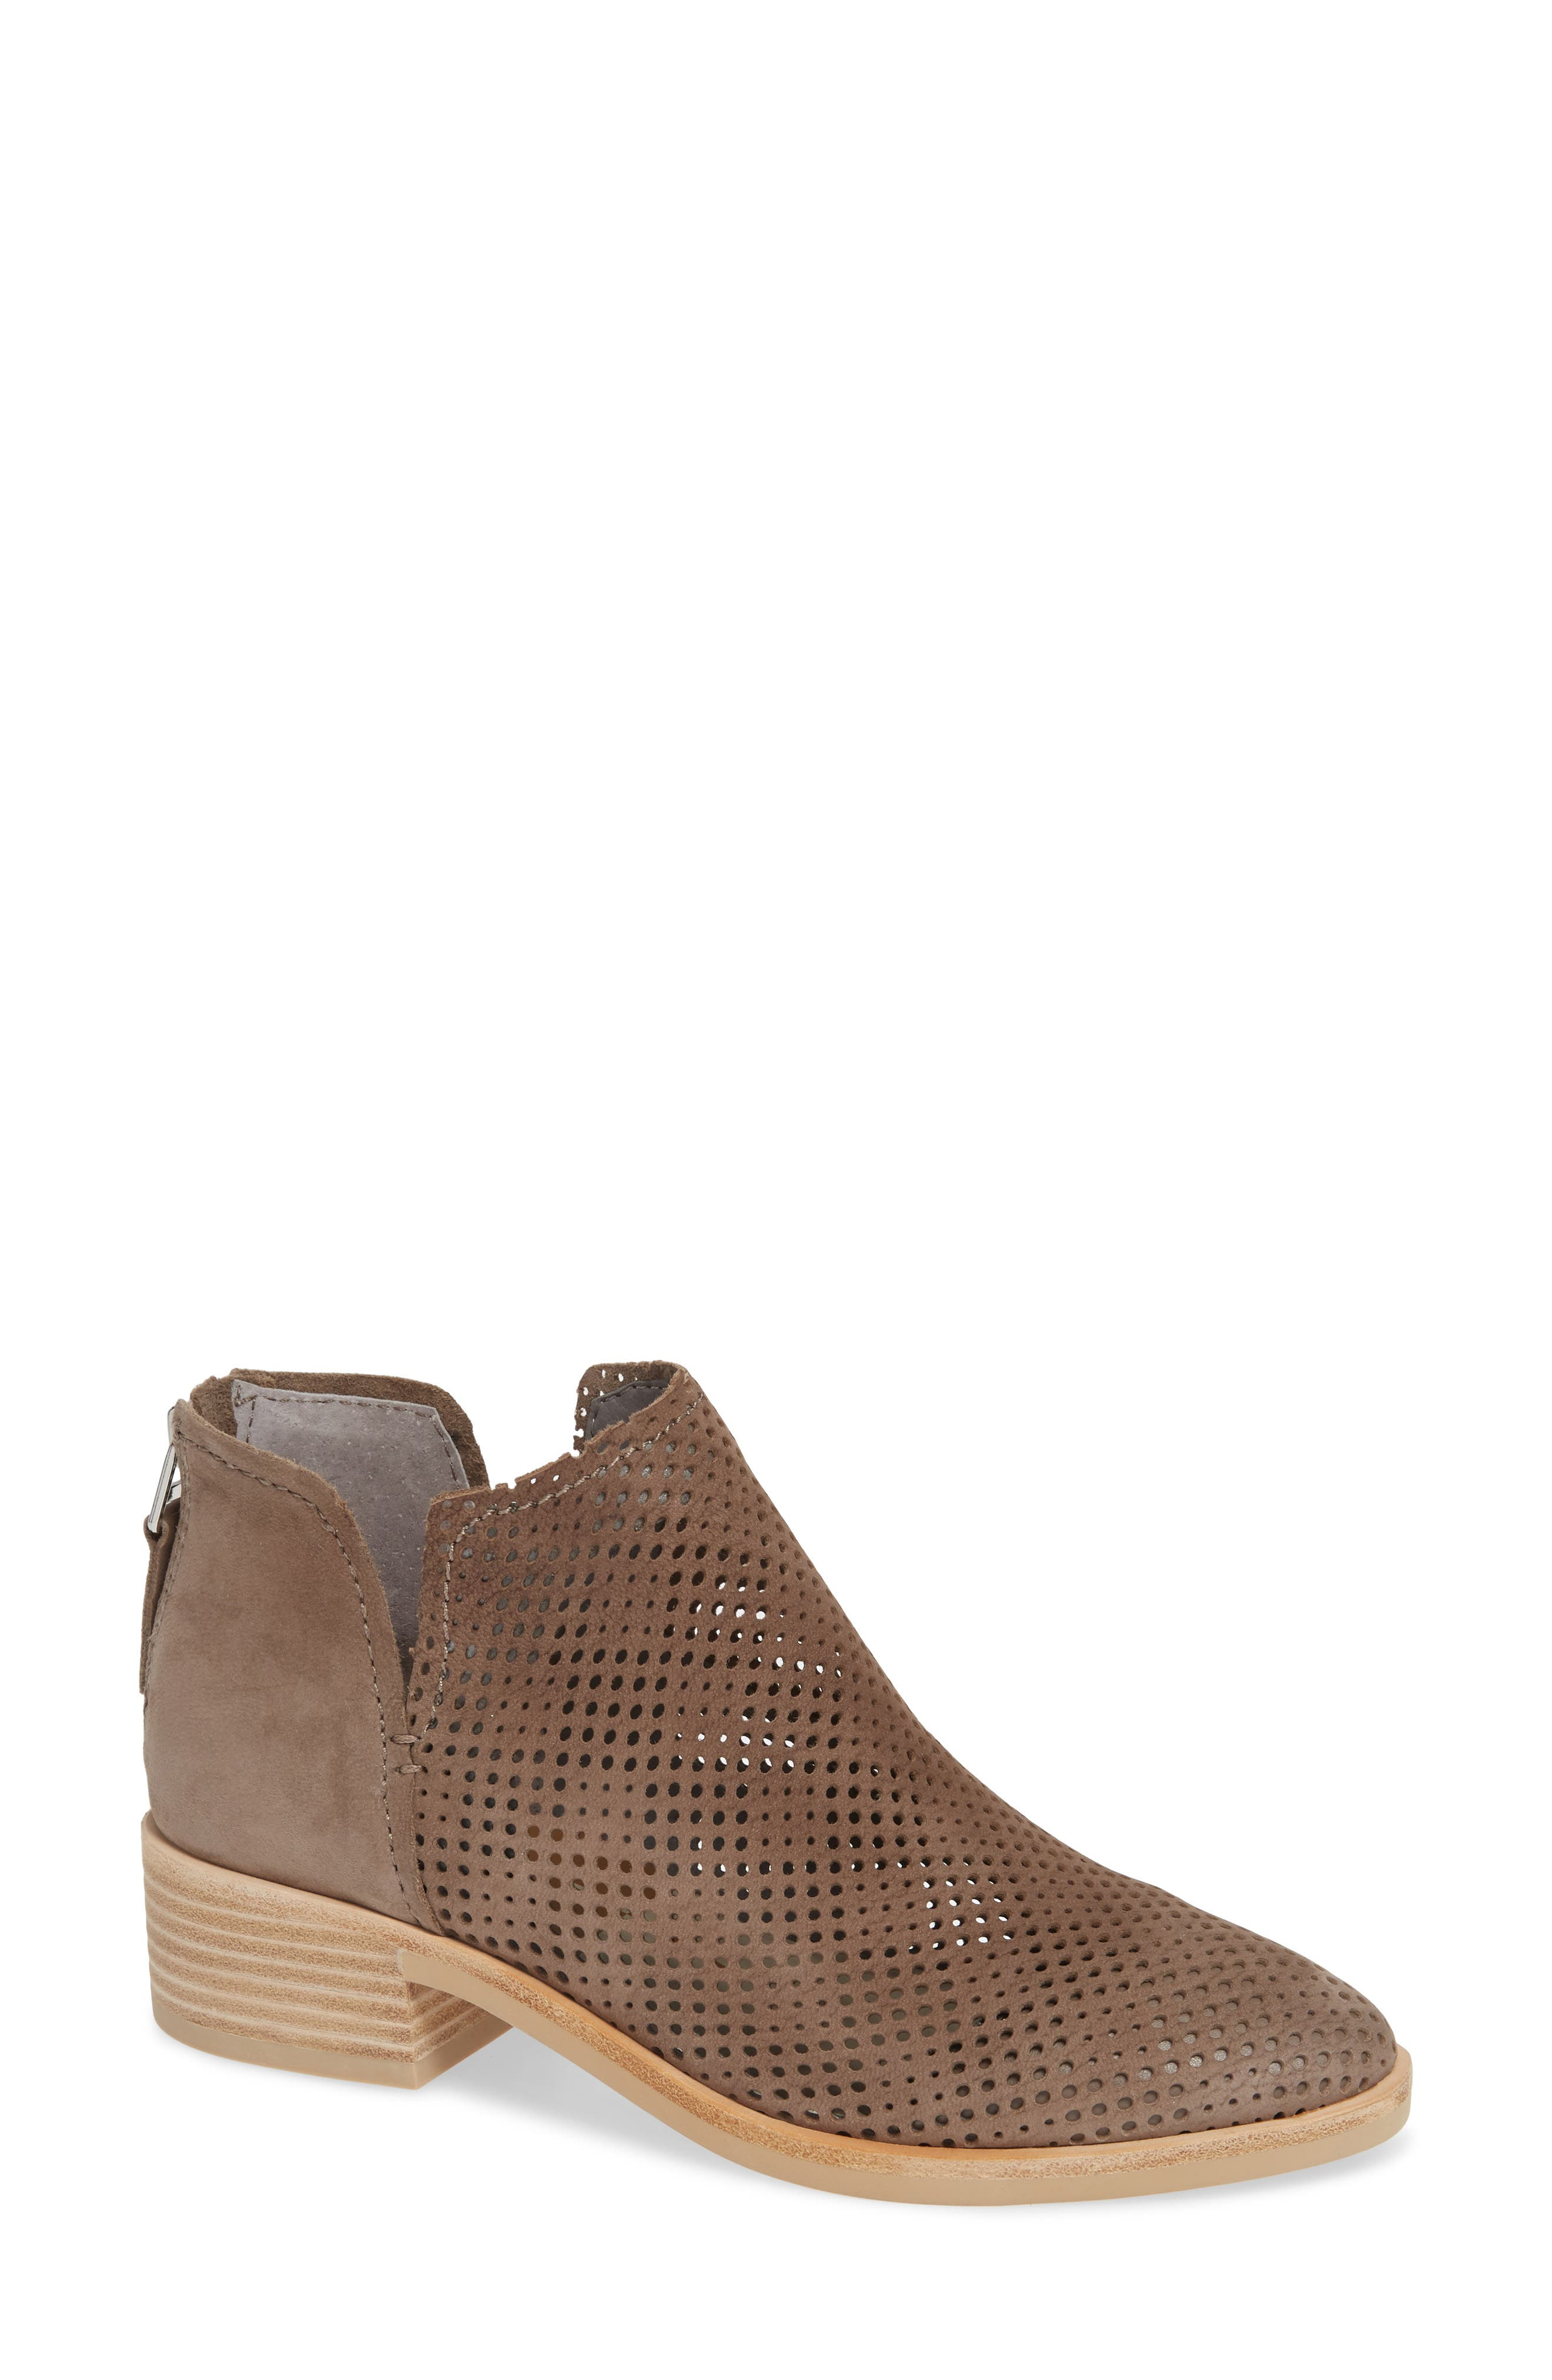 DOLCE VITA Tauris Perforated Bootie, Main, color, SMOKE